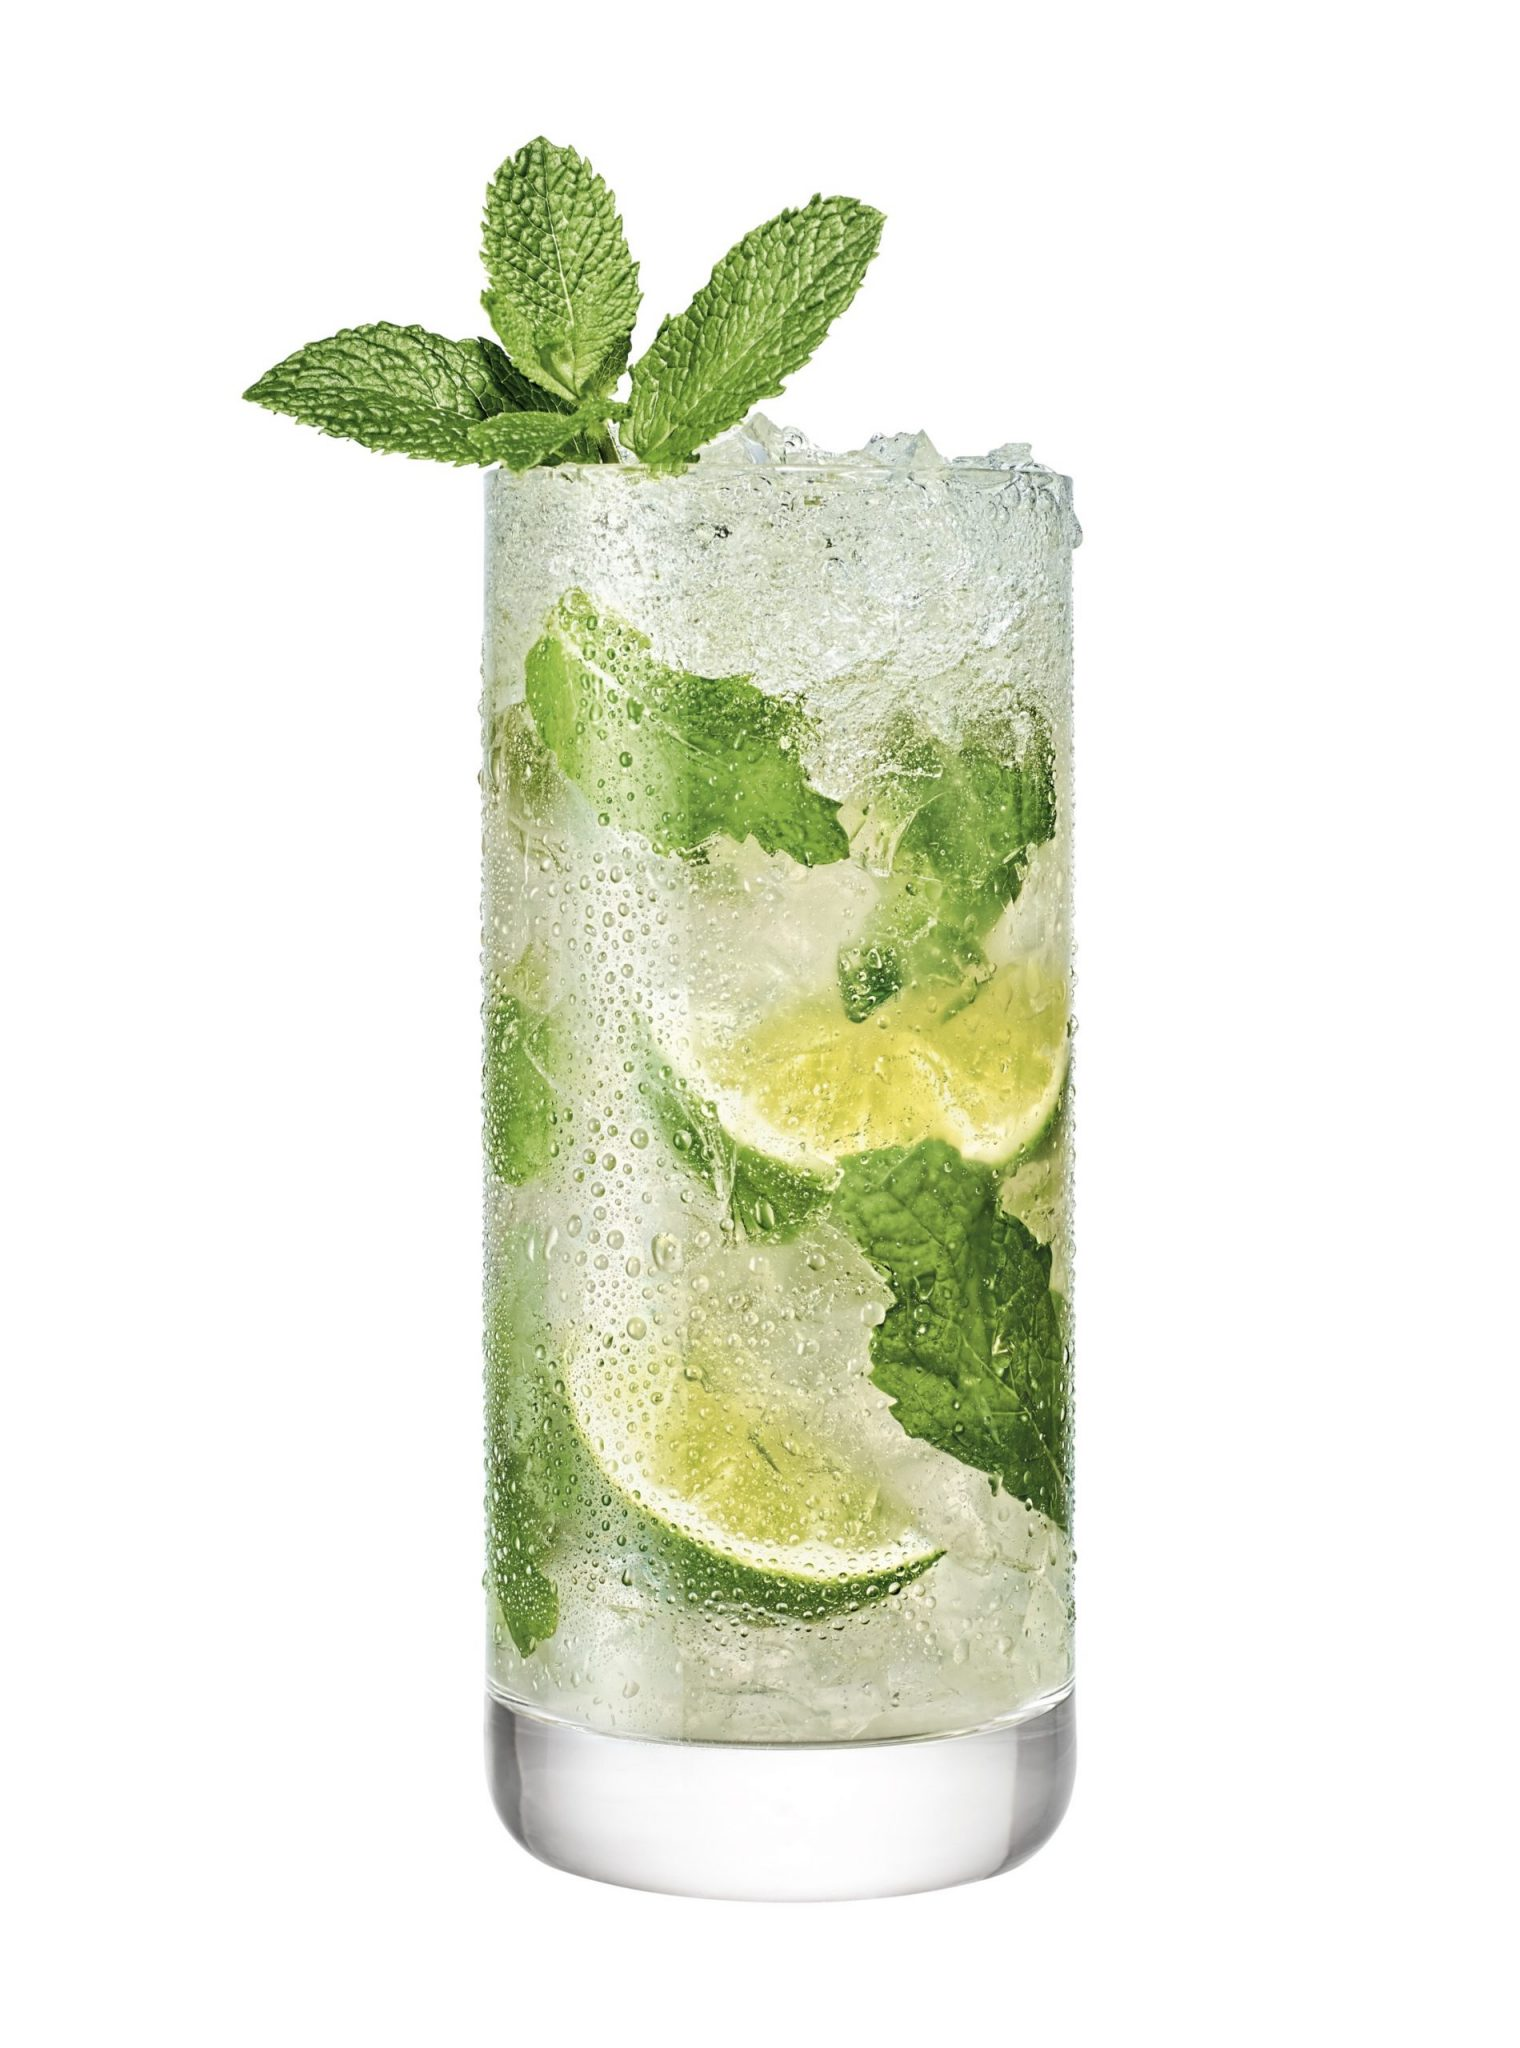 BACARDÍ Rum - Mojito - Cut out